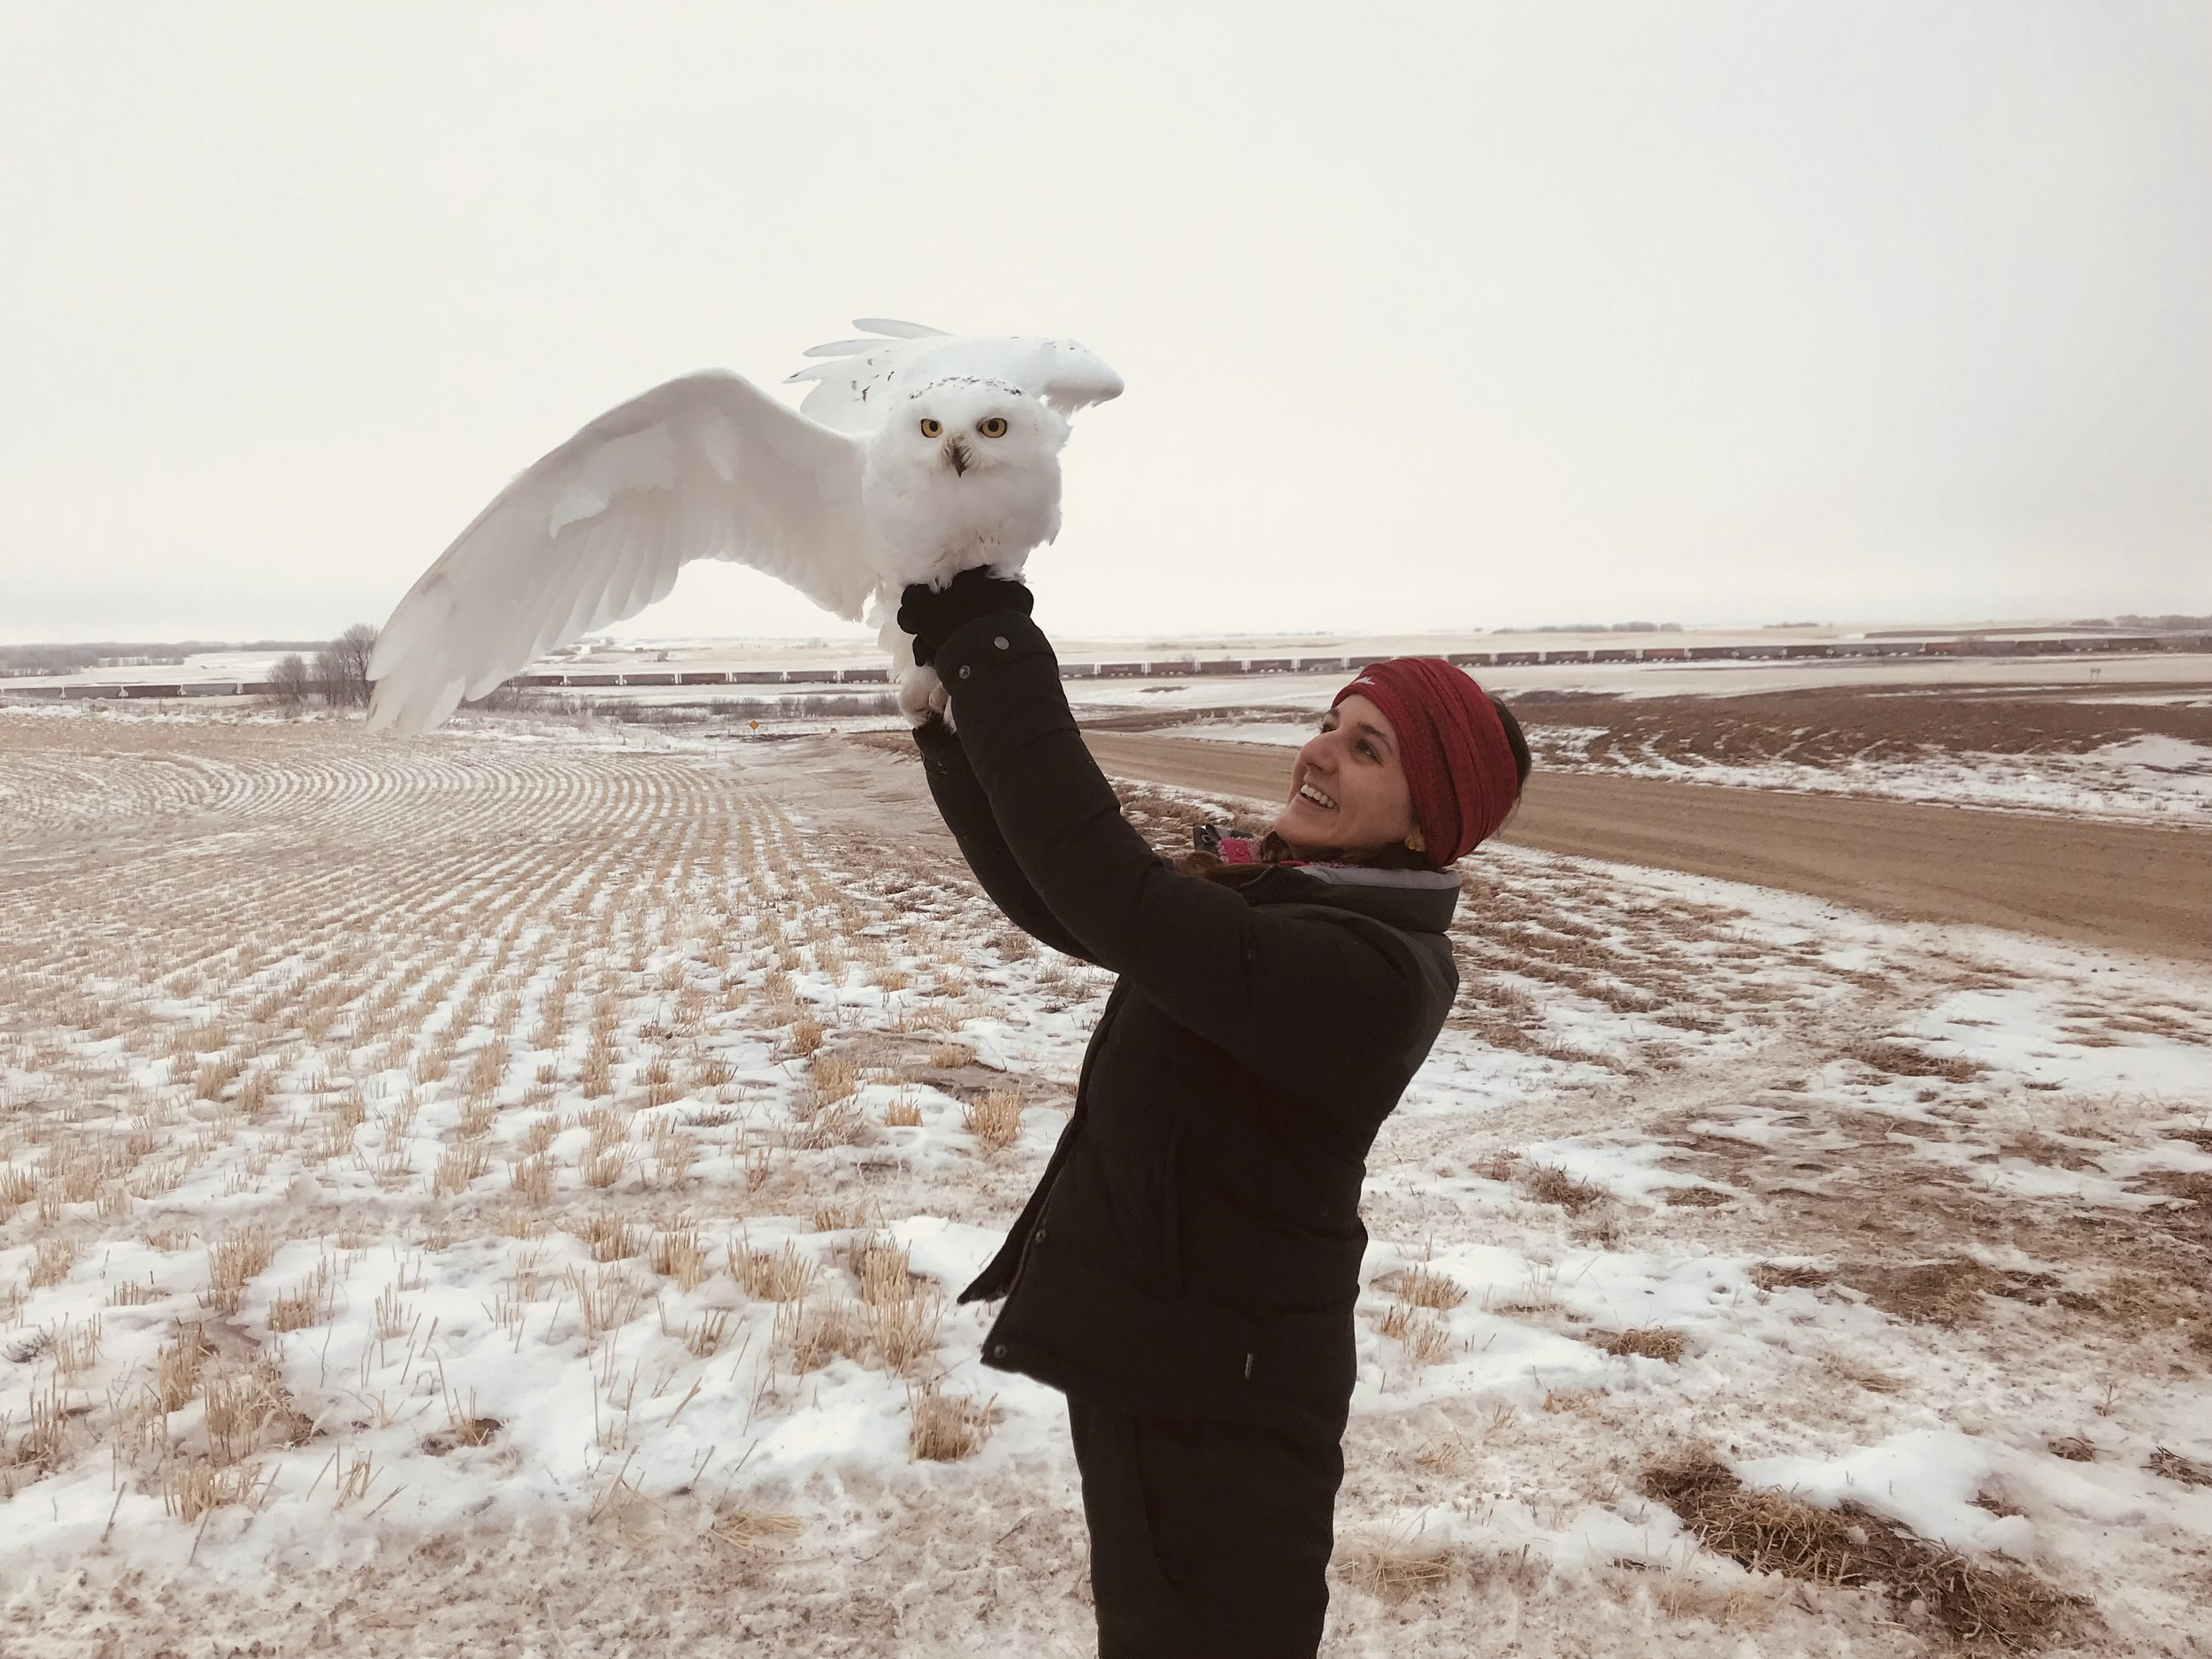 Becca with a recently trapped and tagged snowy owl right before release.